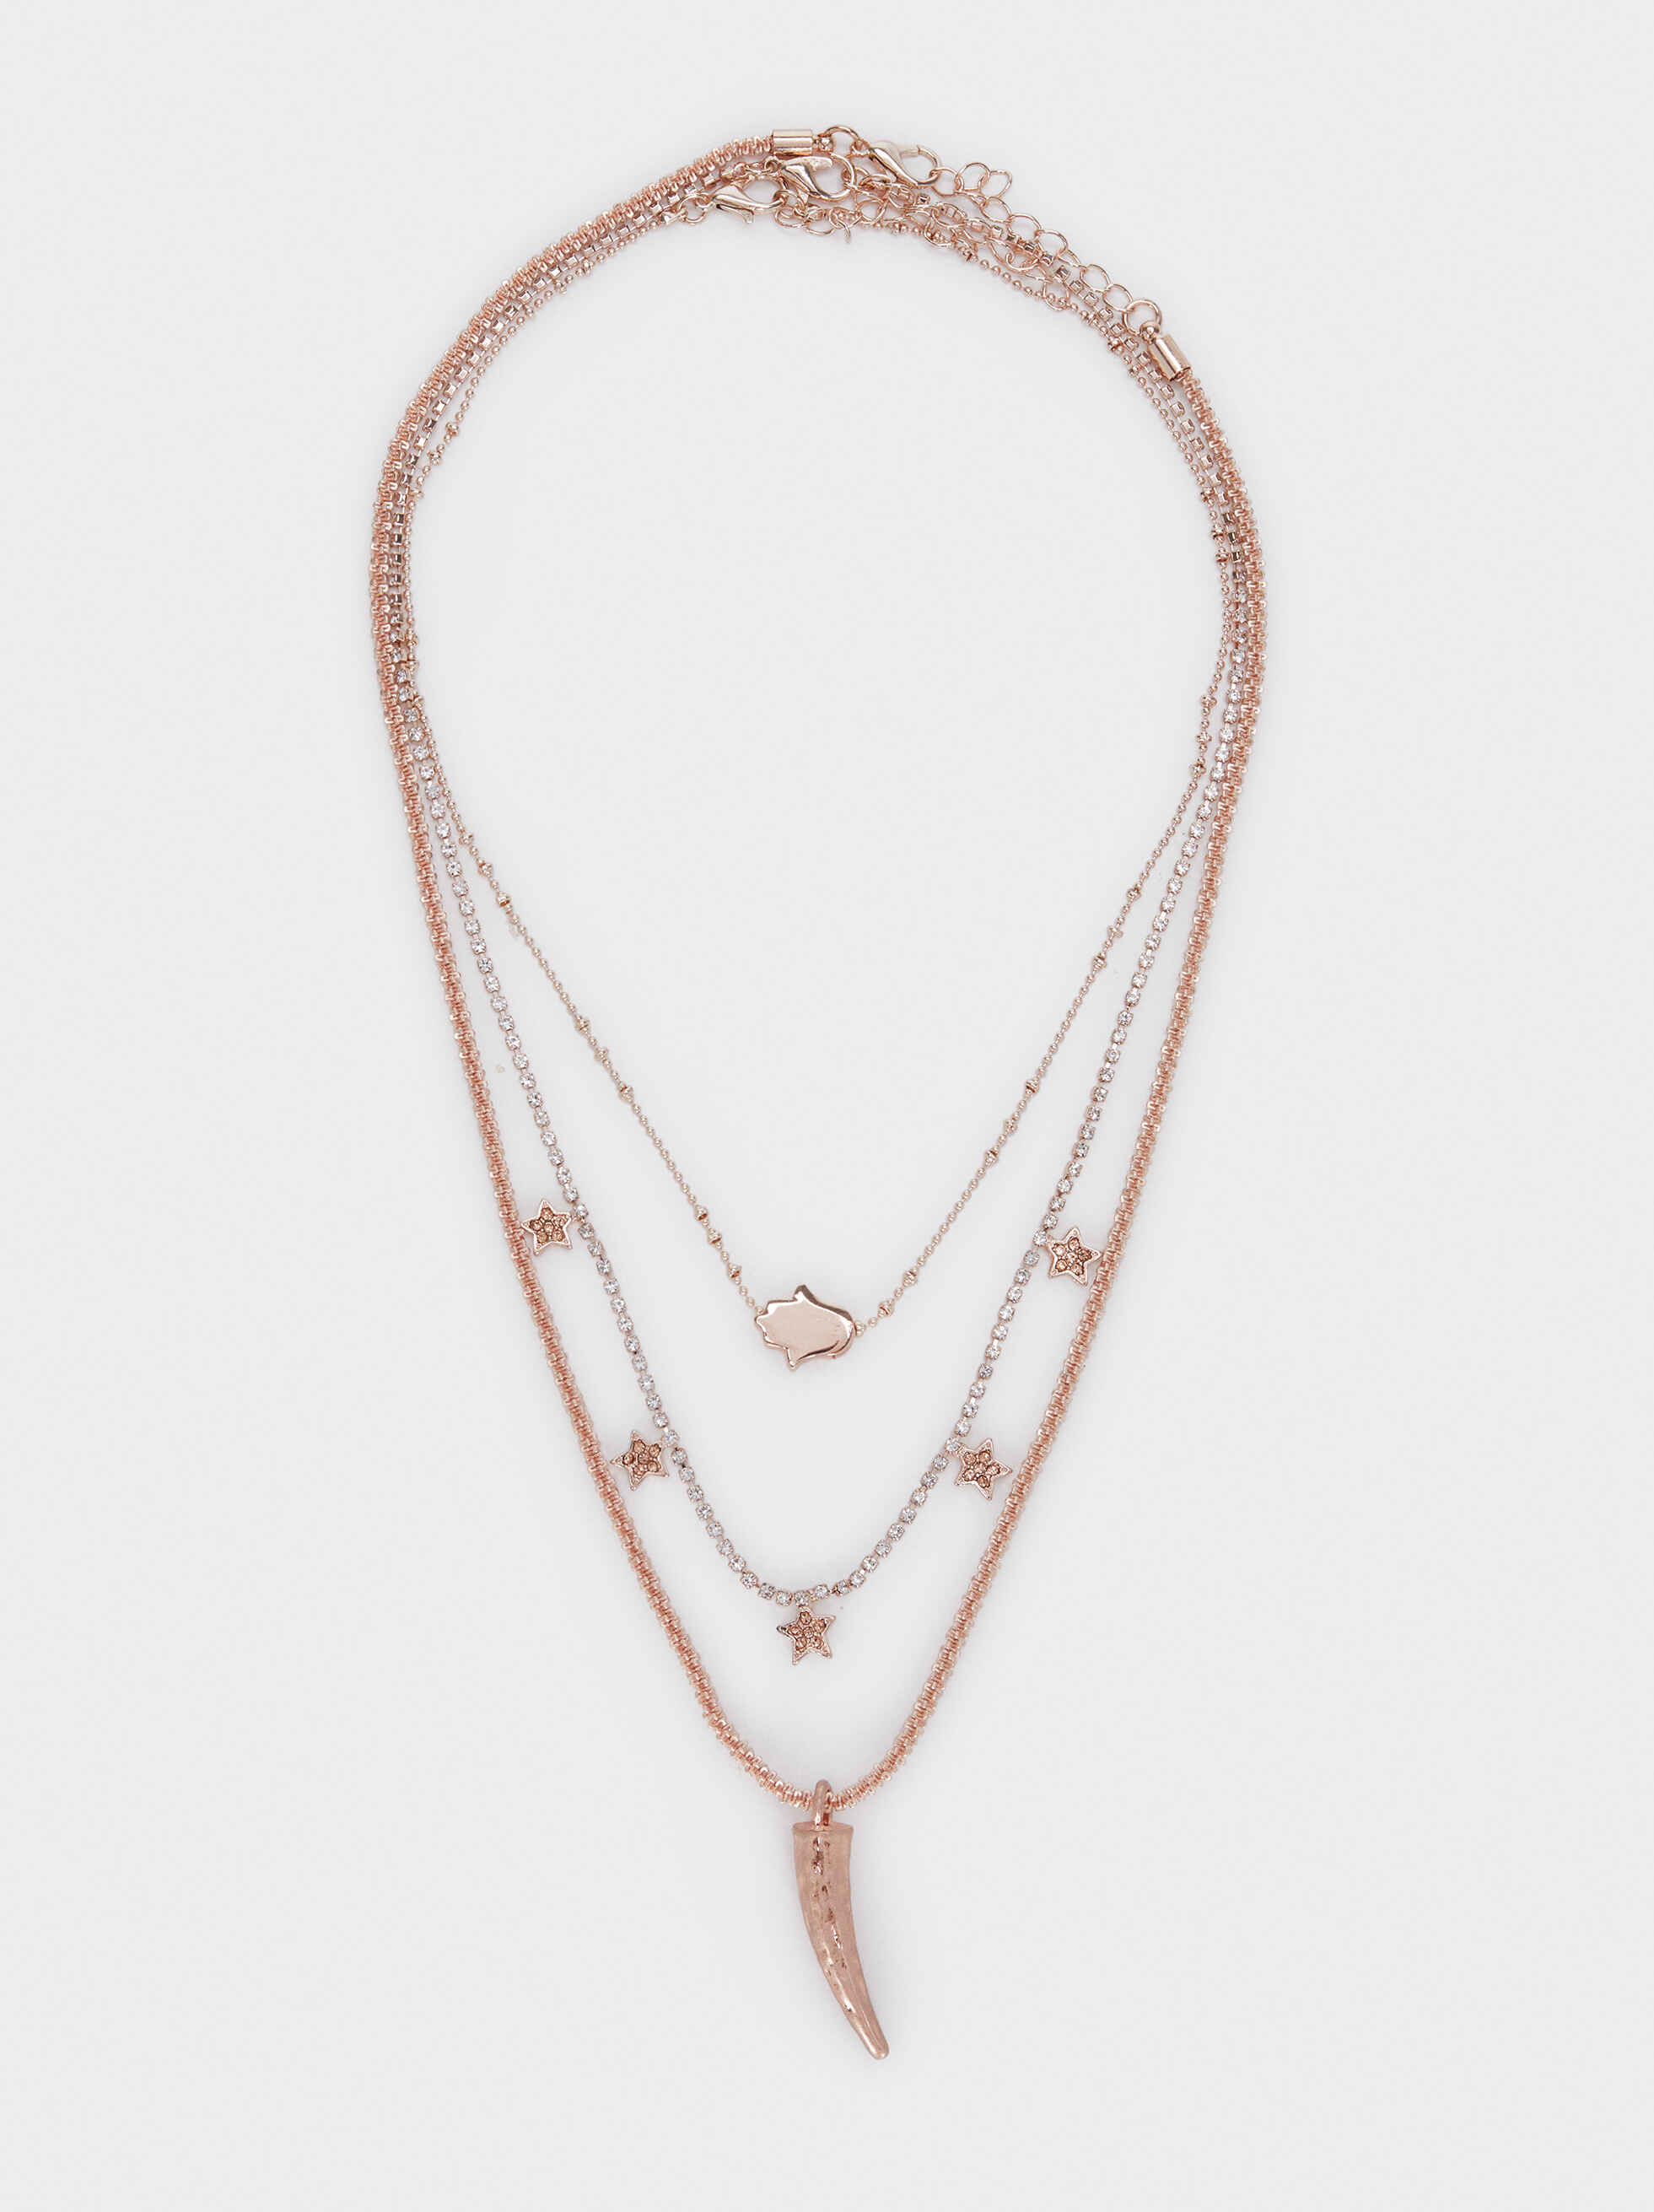 Set Of Necklaces With Star And Horn Details, Orange, hi-res